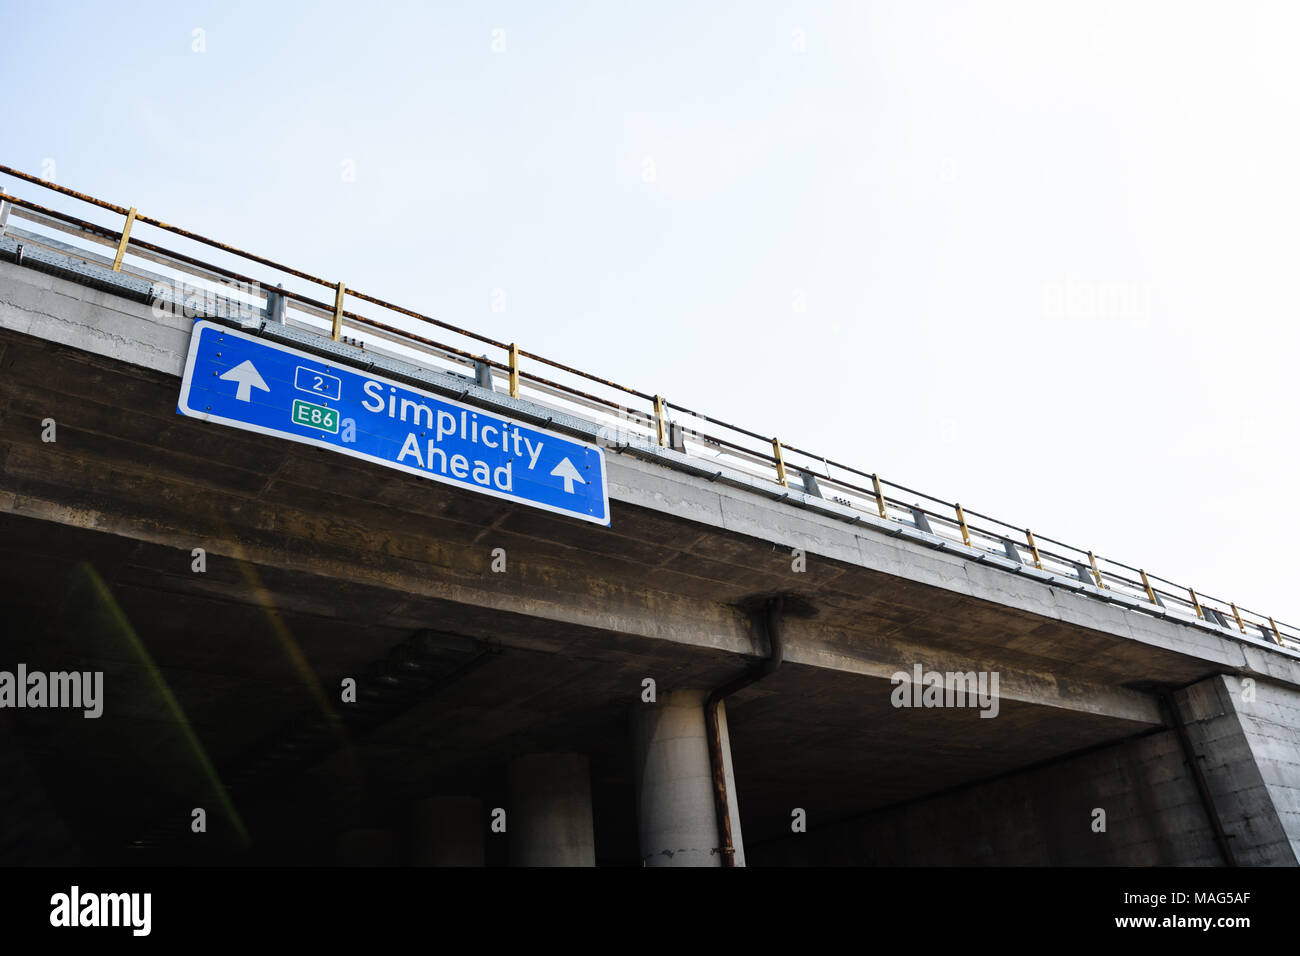 Simplicity Ahead Blue Road Sign Against Clear Sky - Stock Image